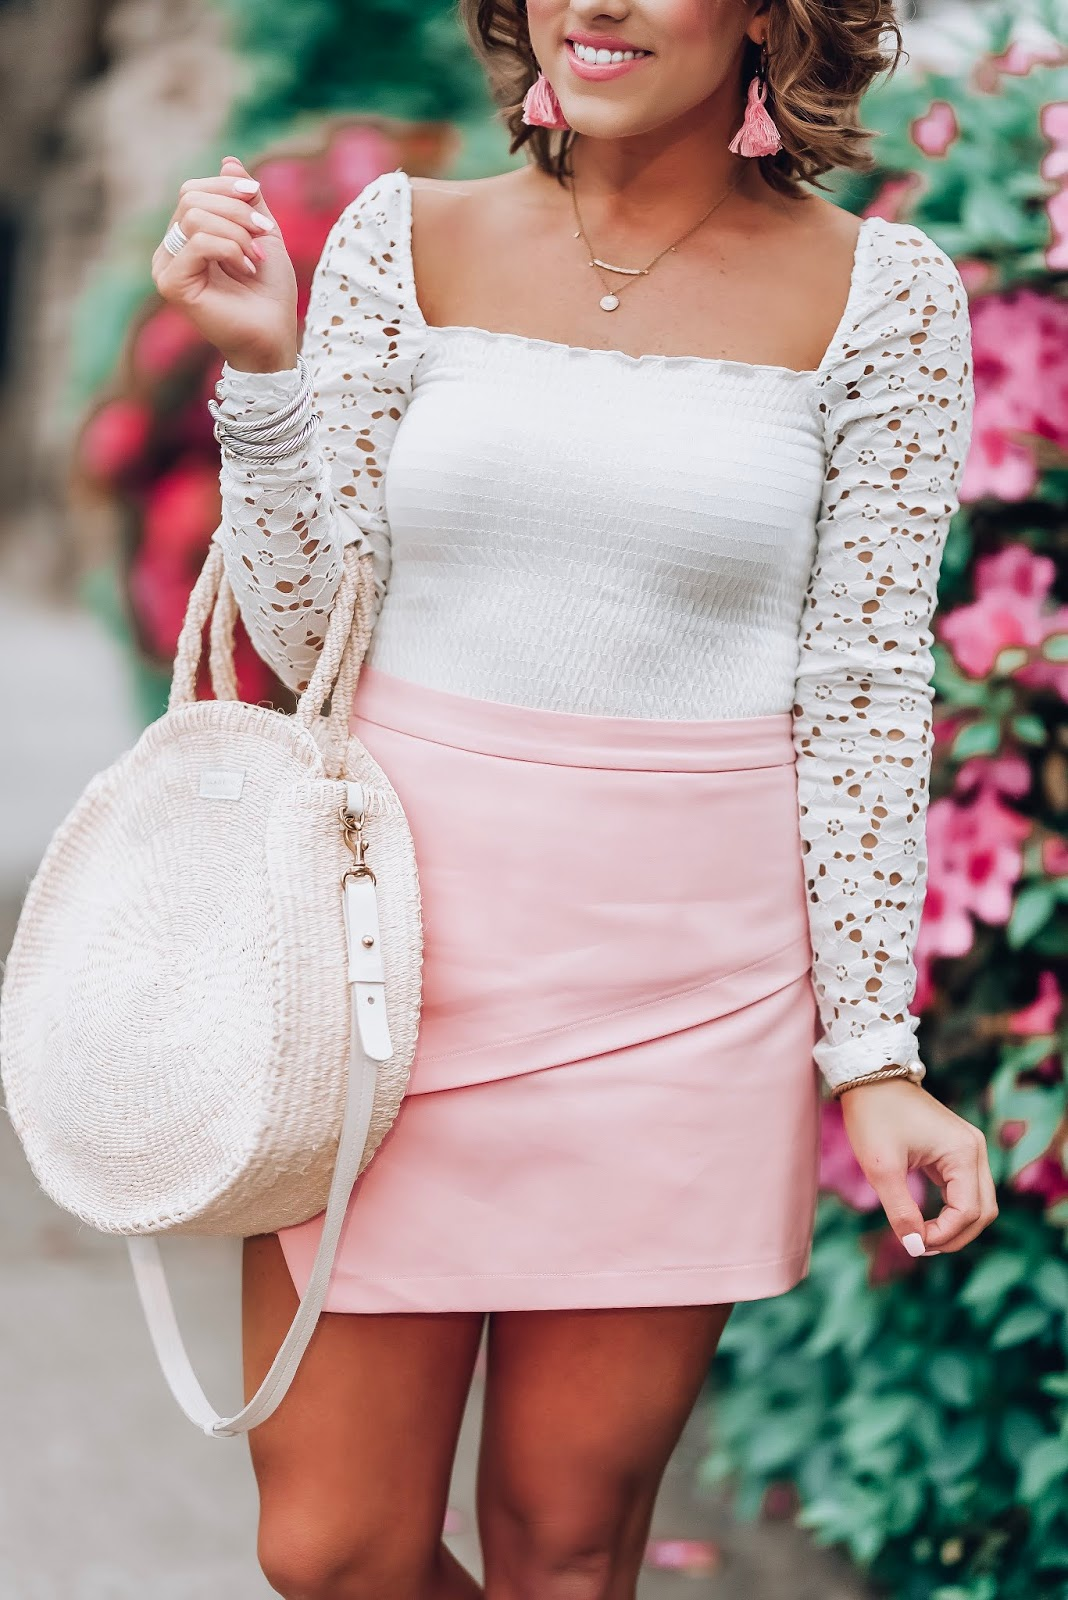 Under $100 Pink Skort + Lace Sleeve Top in Charleston - Something Delightful Blog  #springstyle #summerstyle